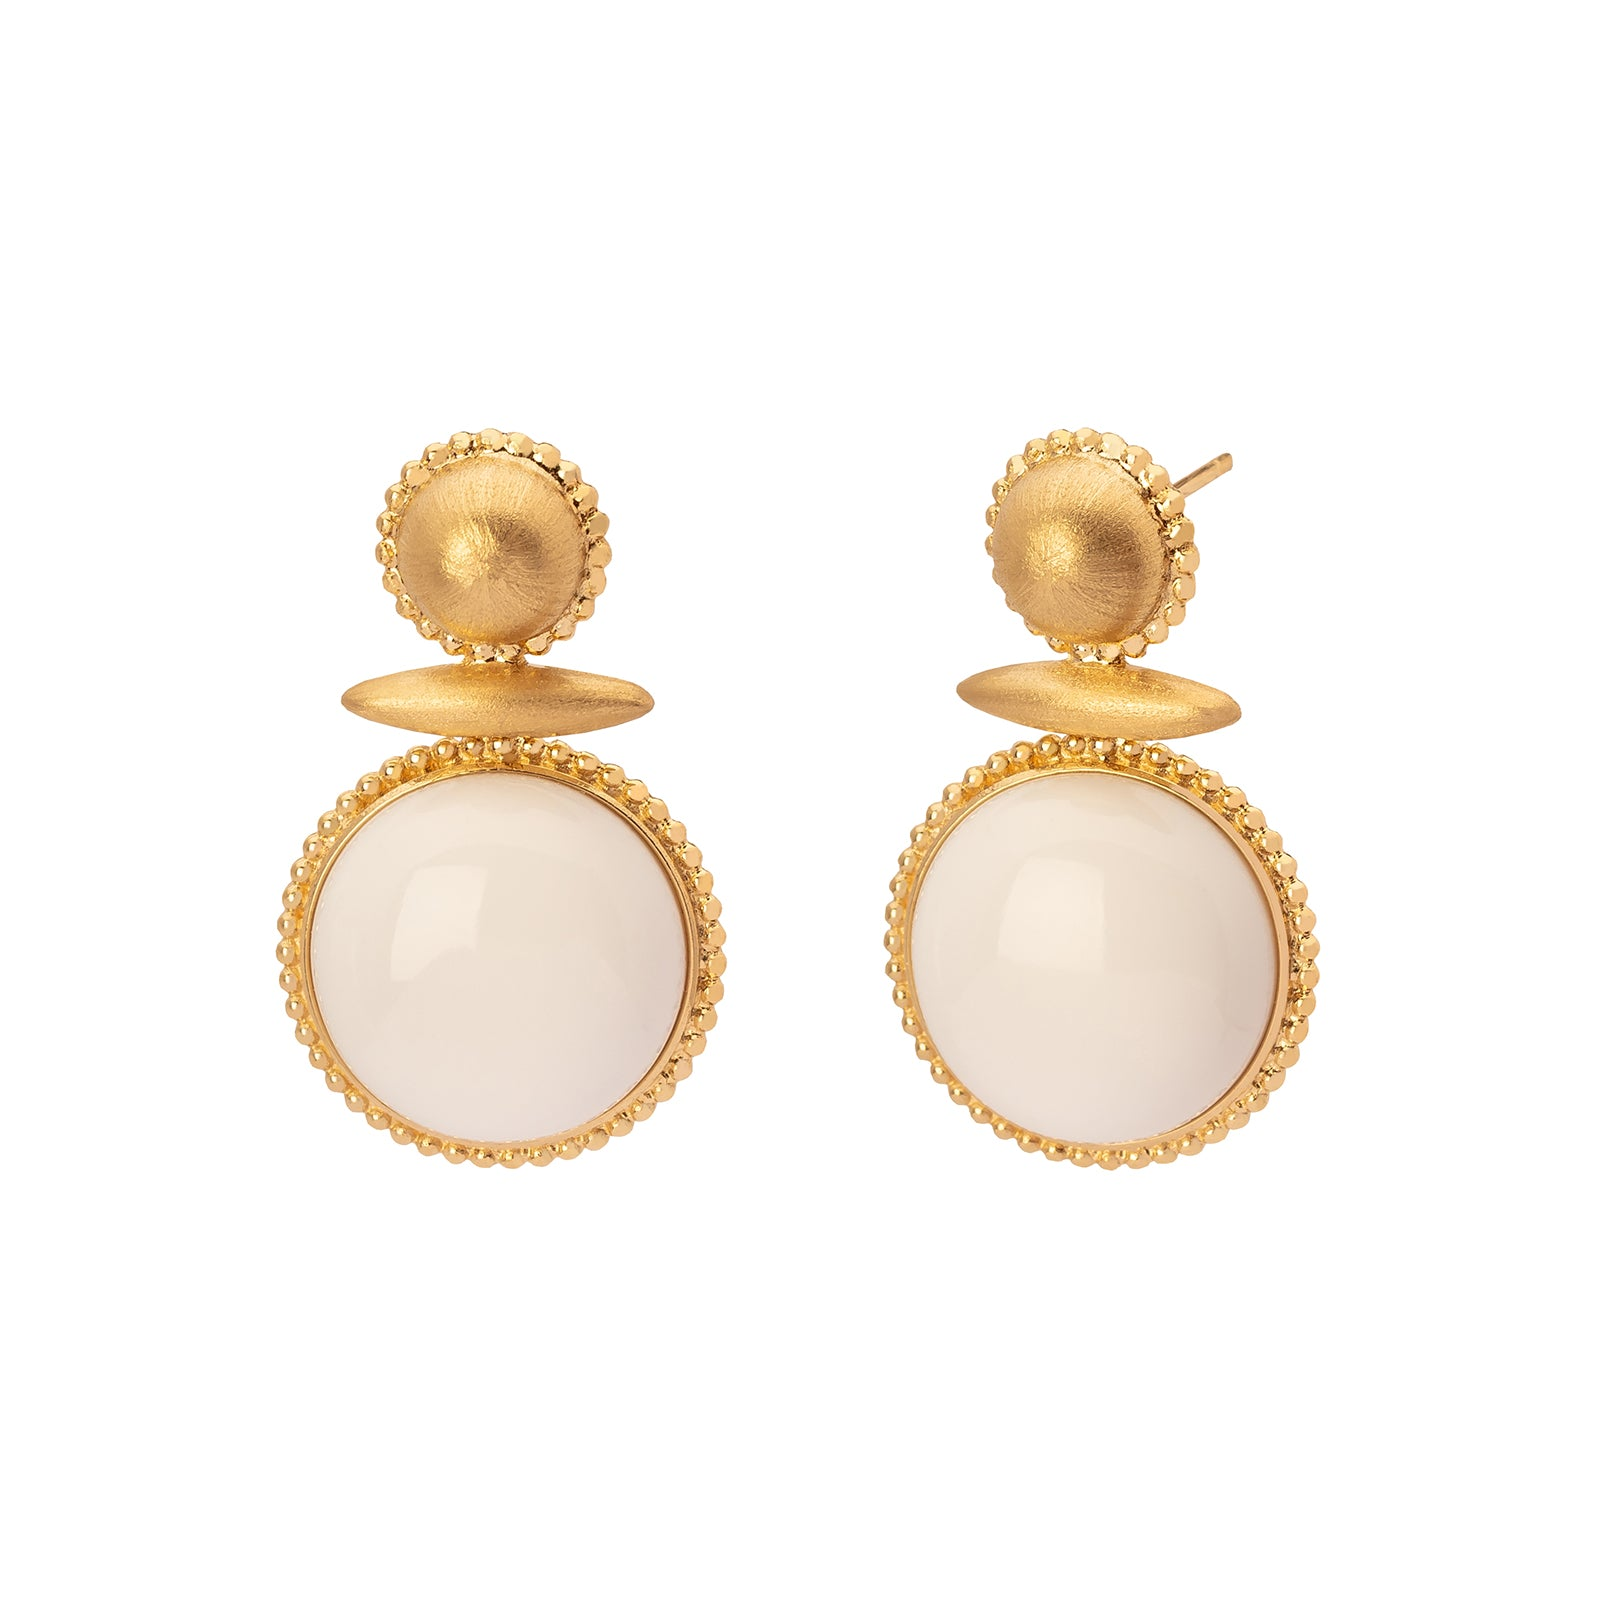 Carla Amorim Gelo Earrings - White Agate - Earrings - Broken English Jewelry